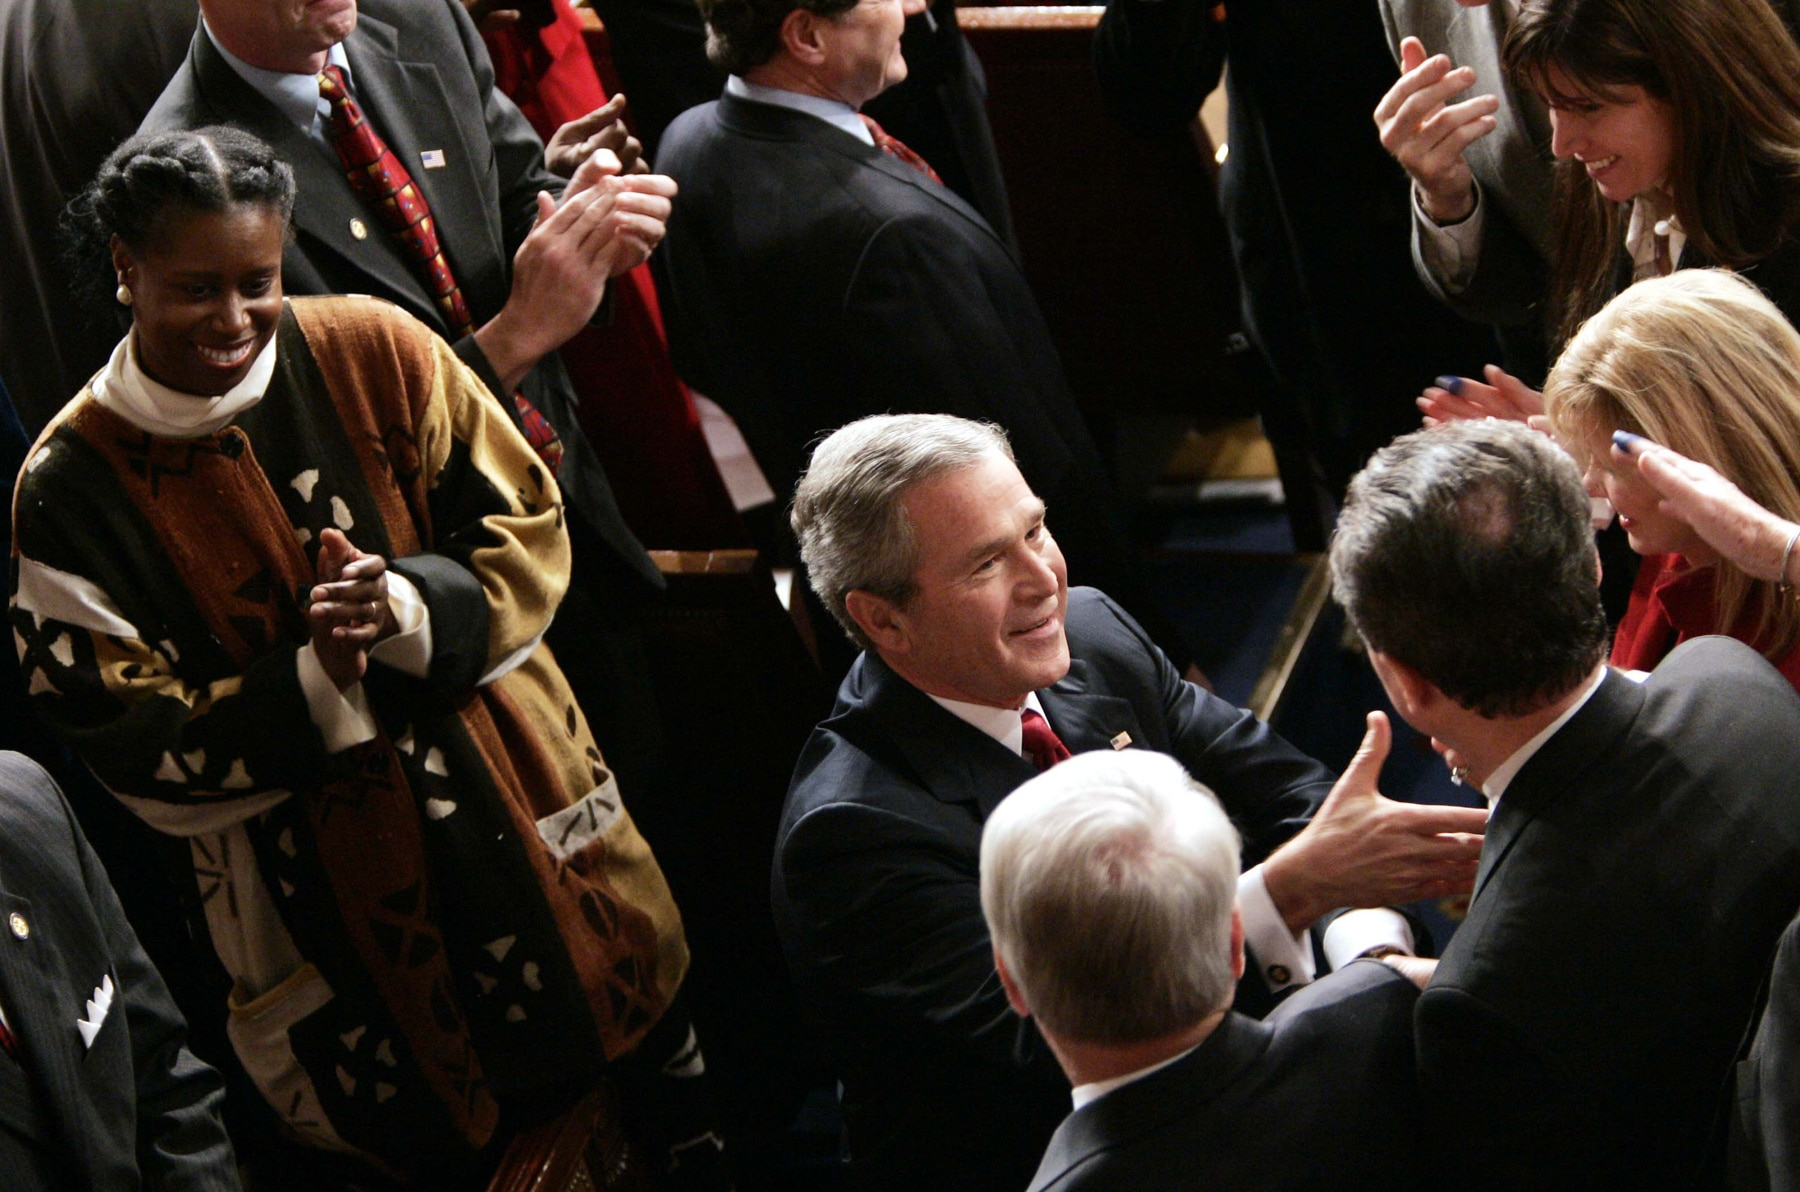 analysis of george w bushs state of the unions speech Compromising the manichaean style: a case study of the 2006 state of the union address  craig r smith  california state university, long beach   the 2006 state of the union address of.